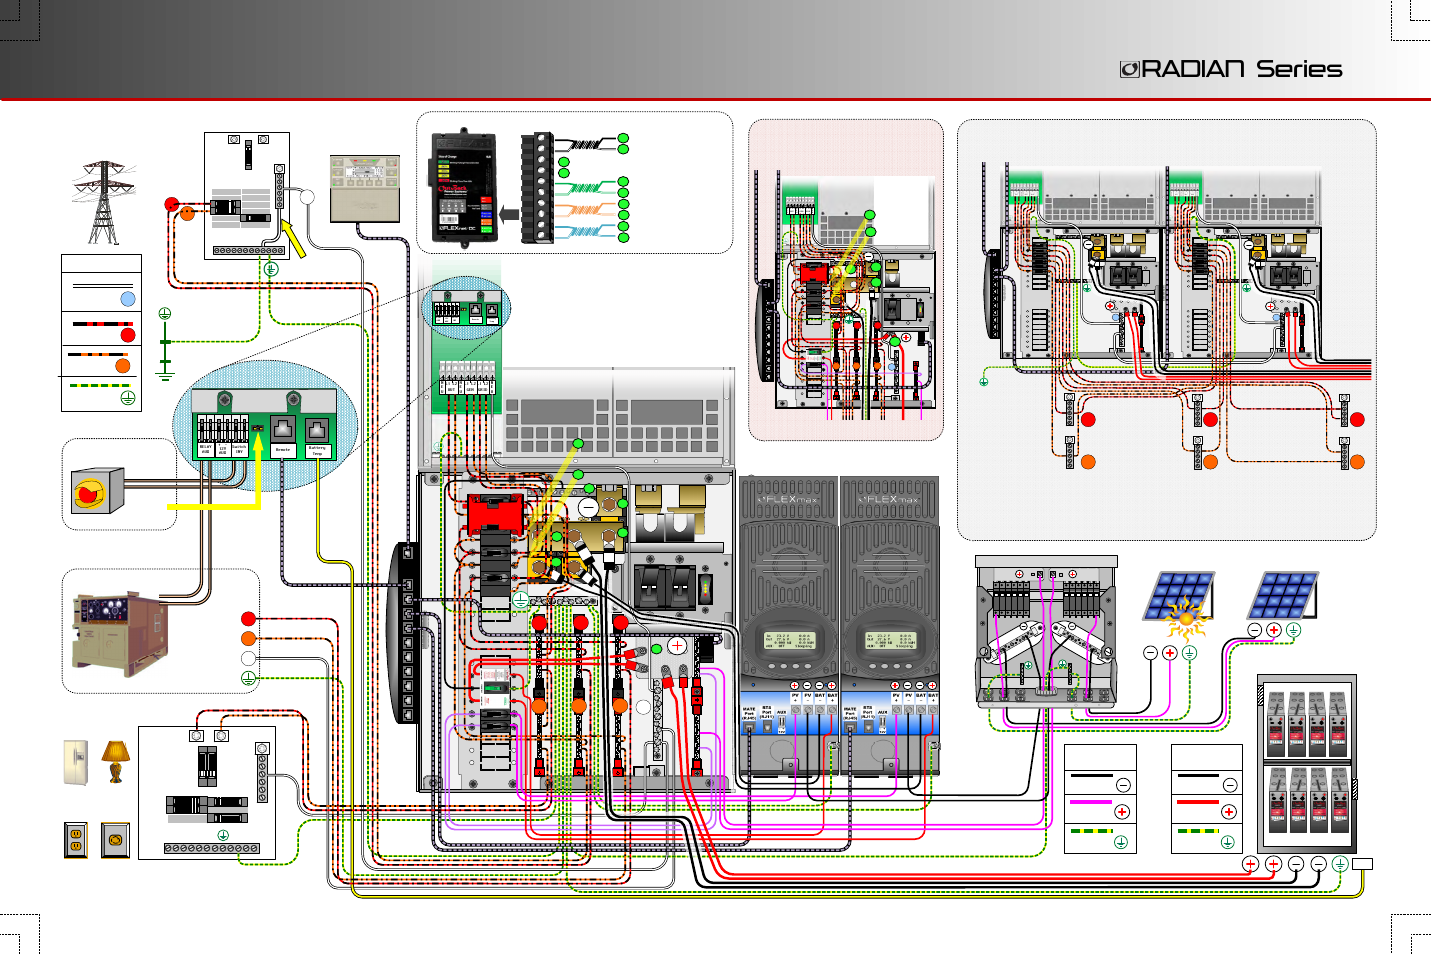 outback power systems gs4048a quick start guide with gslc page4 outback radian wiring diagram camry wiring diagram \u2022 free wiring  at aneh.co